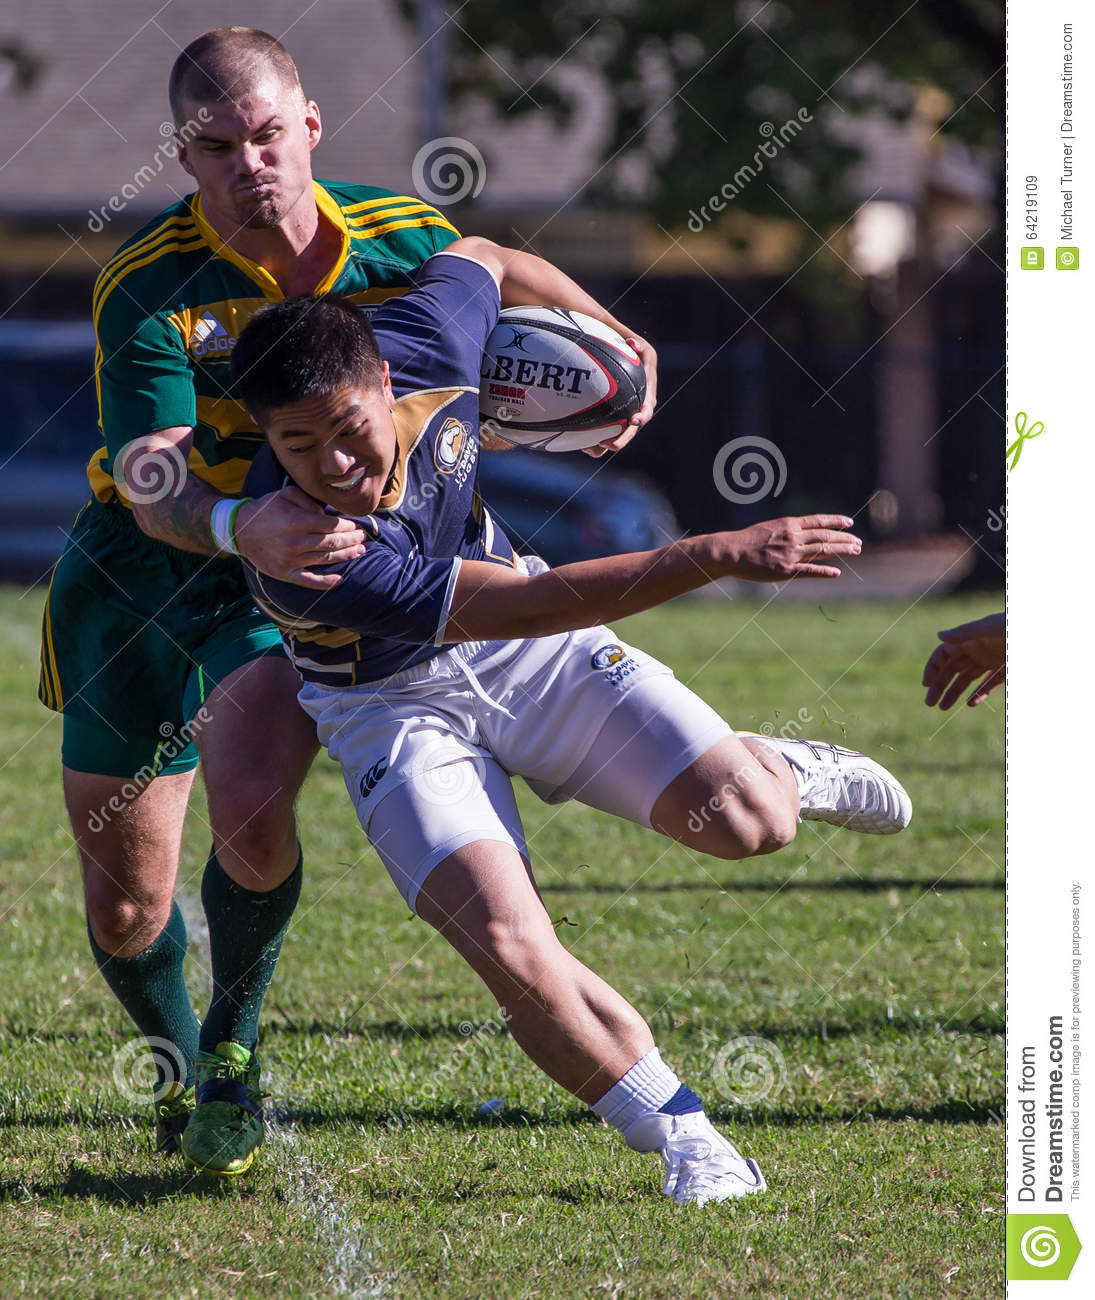 Green Rugby Player: Caught From Behind Editorial Stock Image